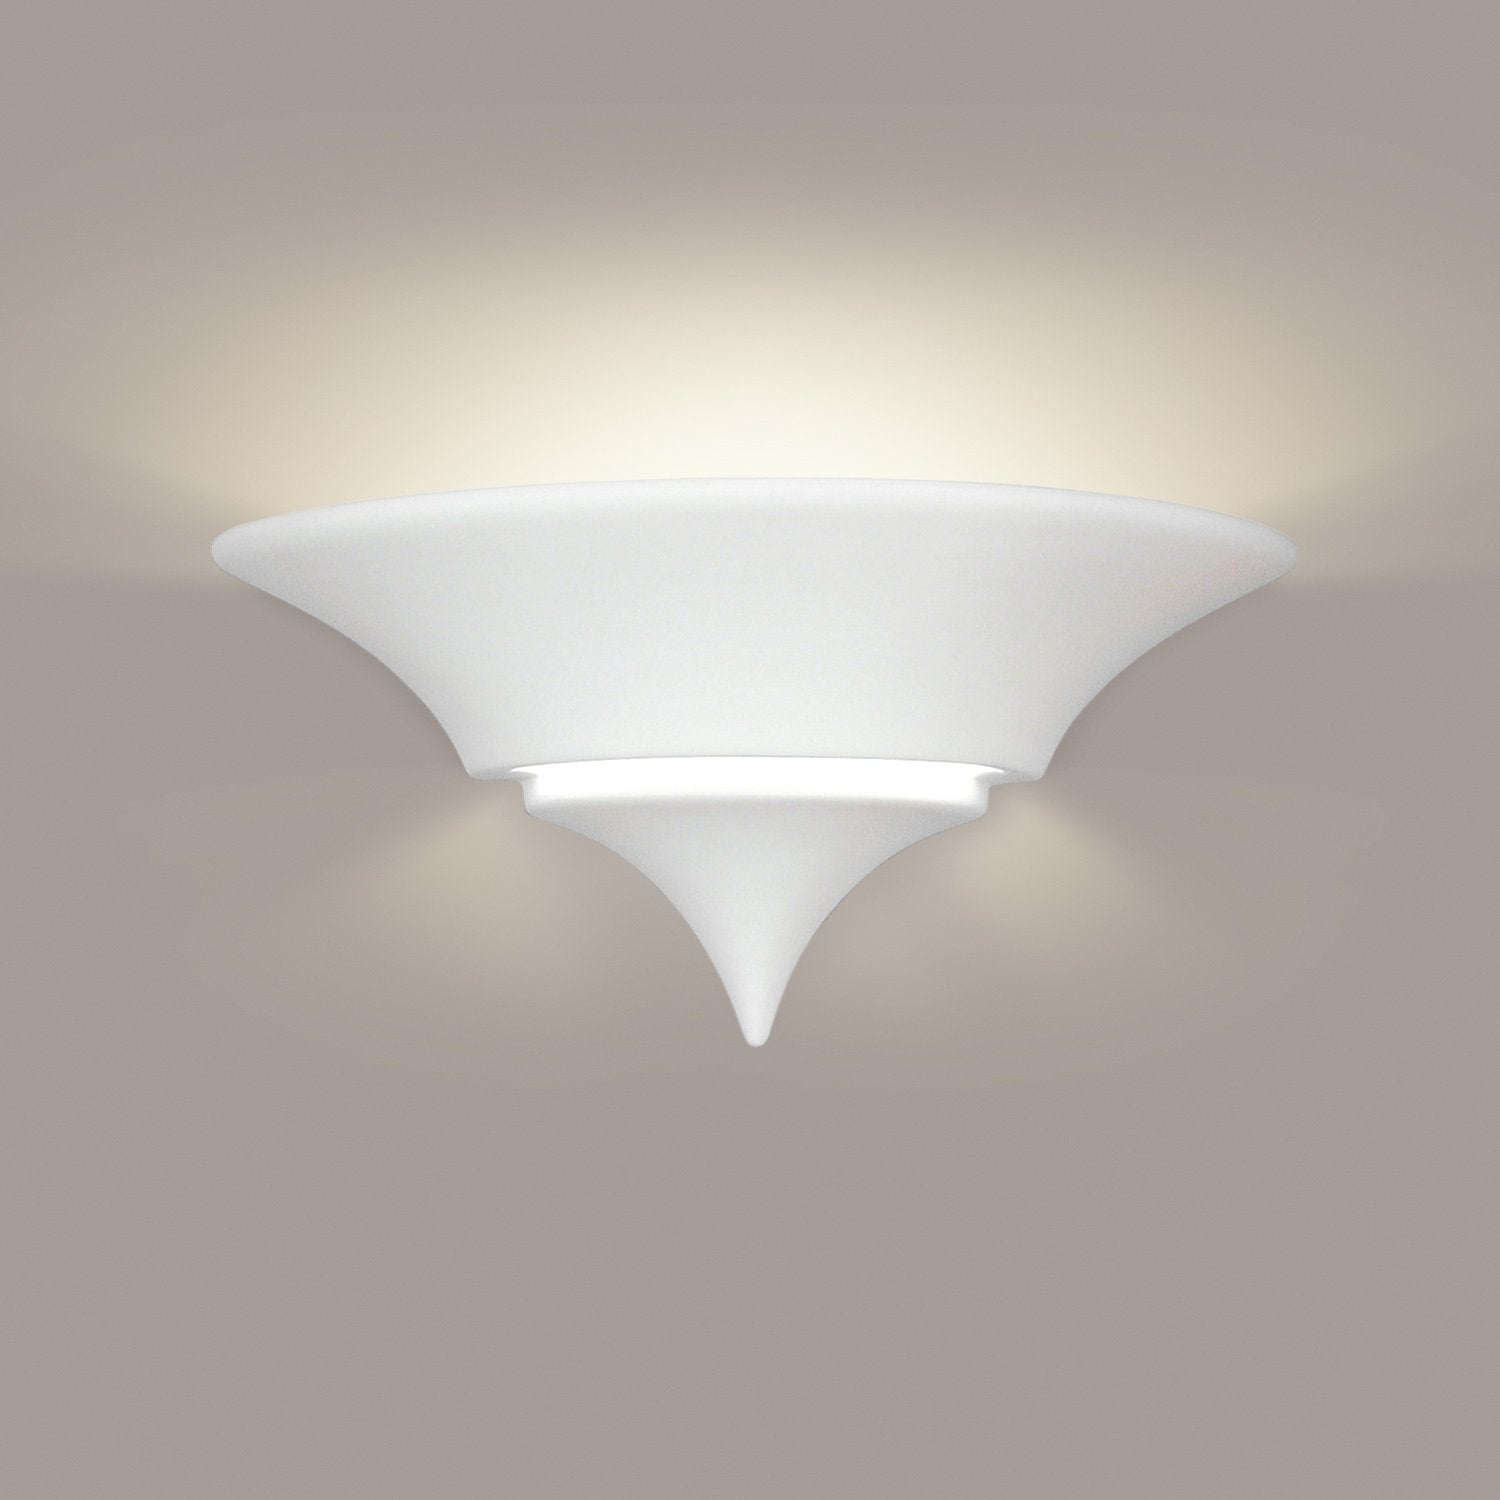 A19 401-A25 Islands of Light Collection Atlantis Claret Finish Wall Sconce